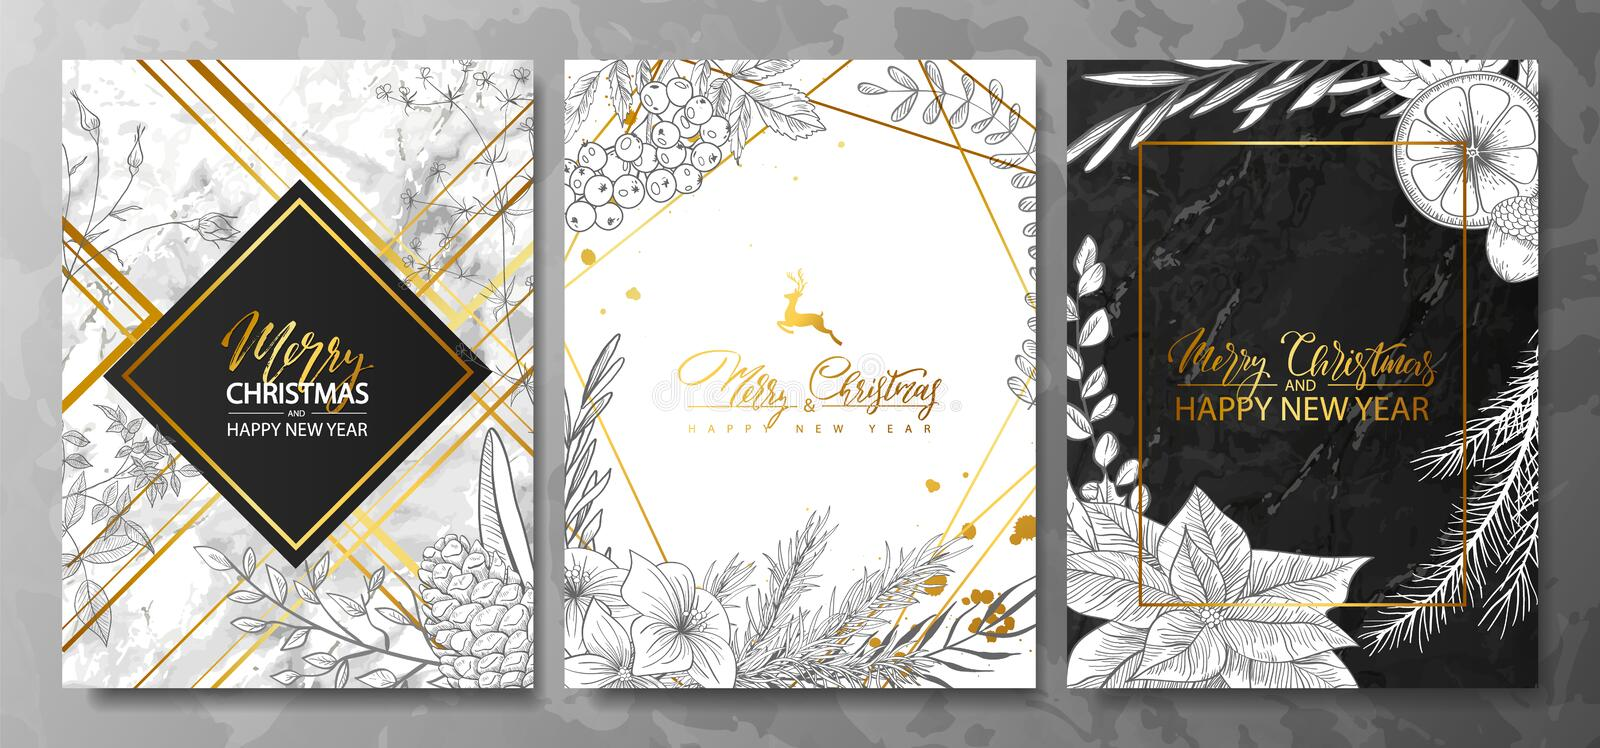 2019 Merry Christmas and Happy New Year Luxury cards collection with marble texture,Golden geometric shape and hand-drawn winter p vector illustration